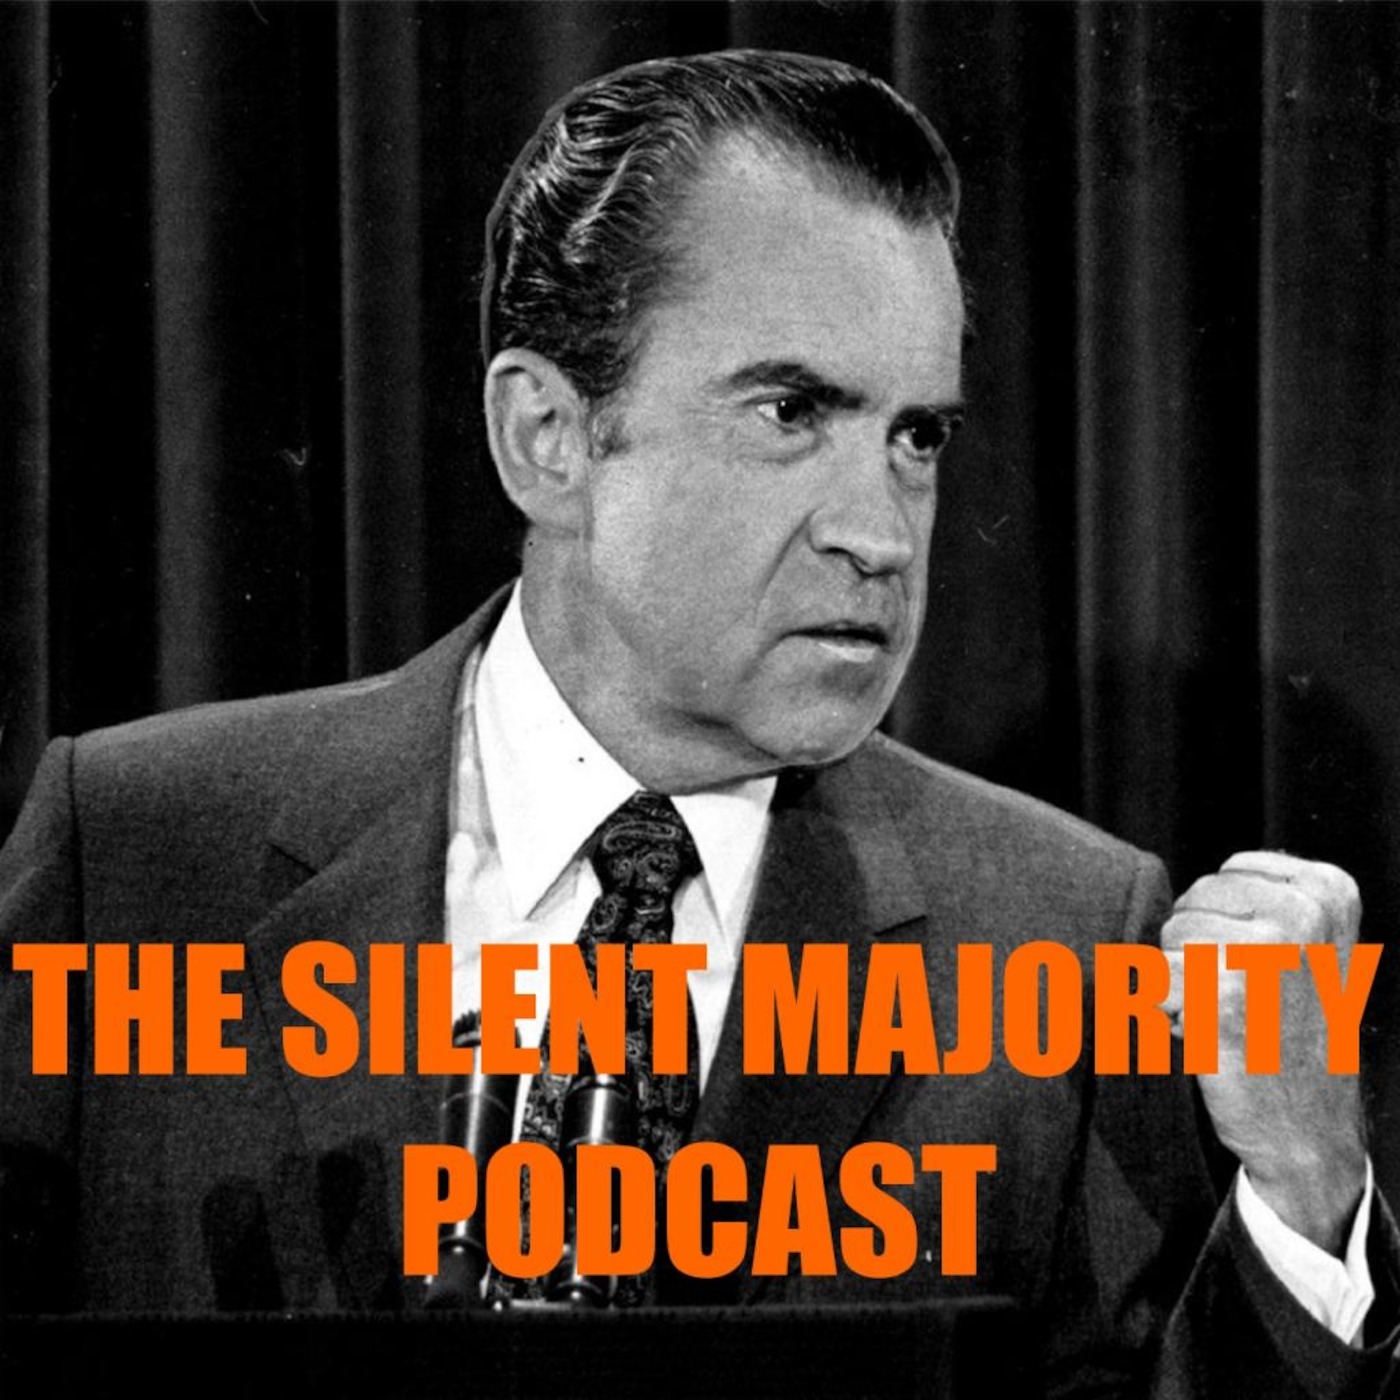 The Silent Majority Podcast